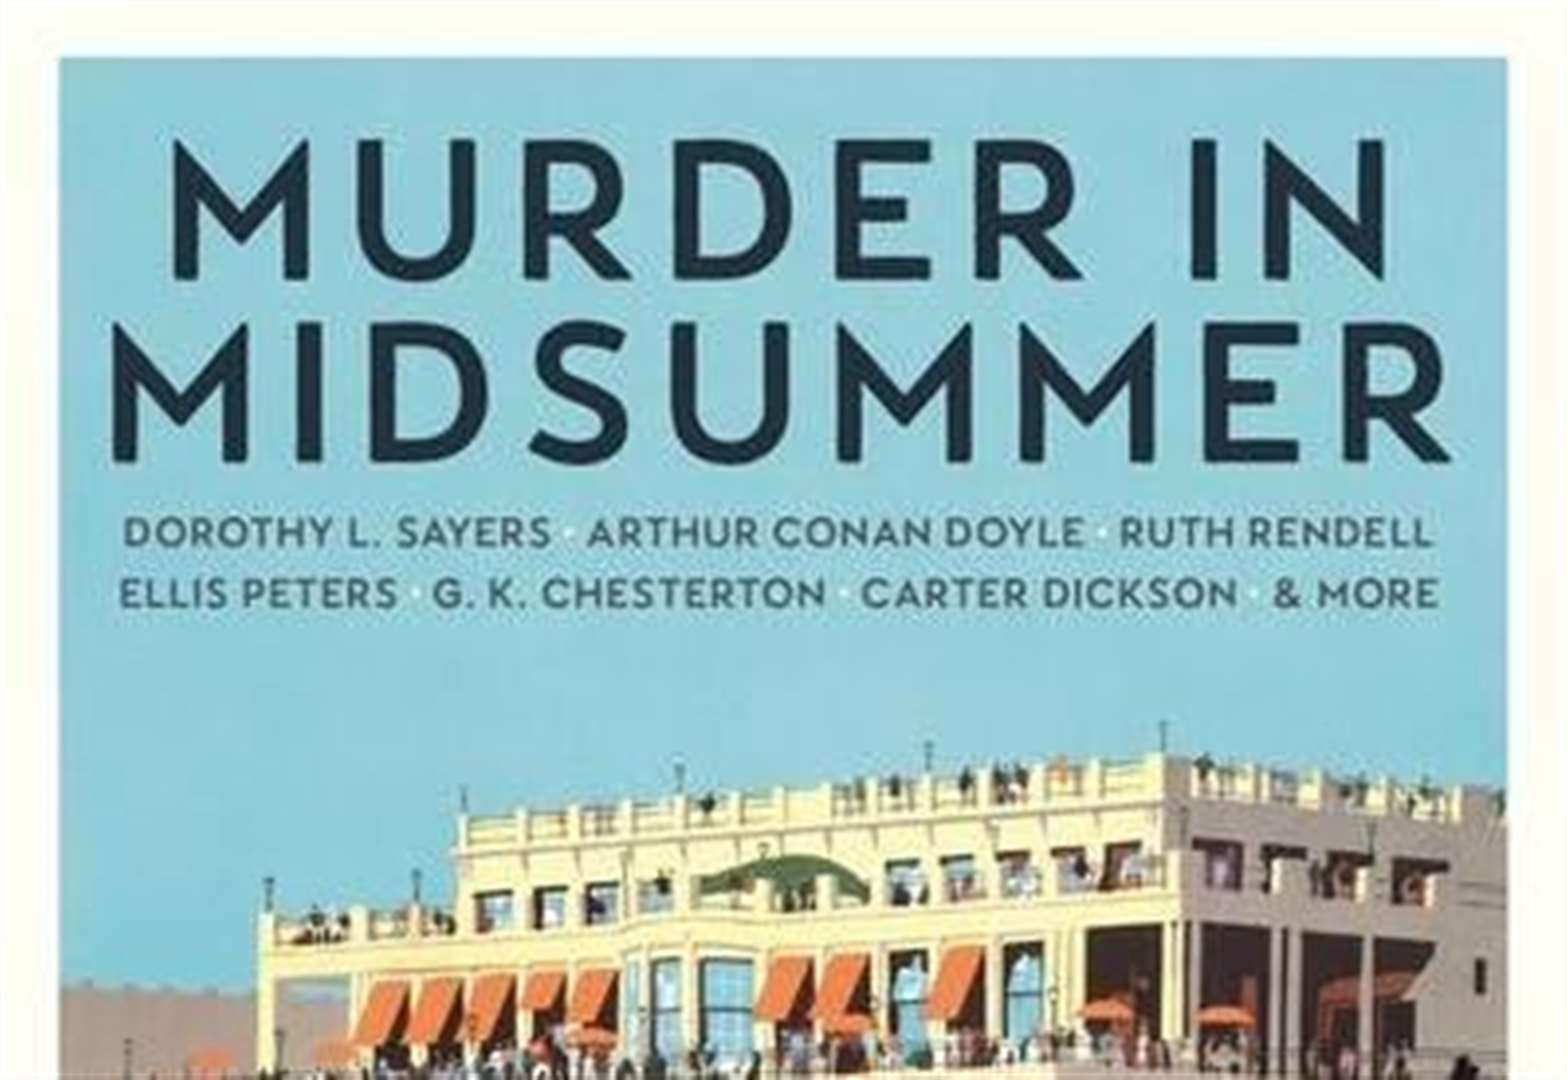 BOOK OF THE WEEK: Murder in Midsummer by various authors